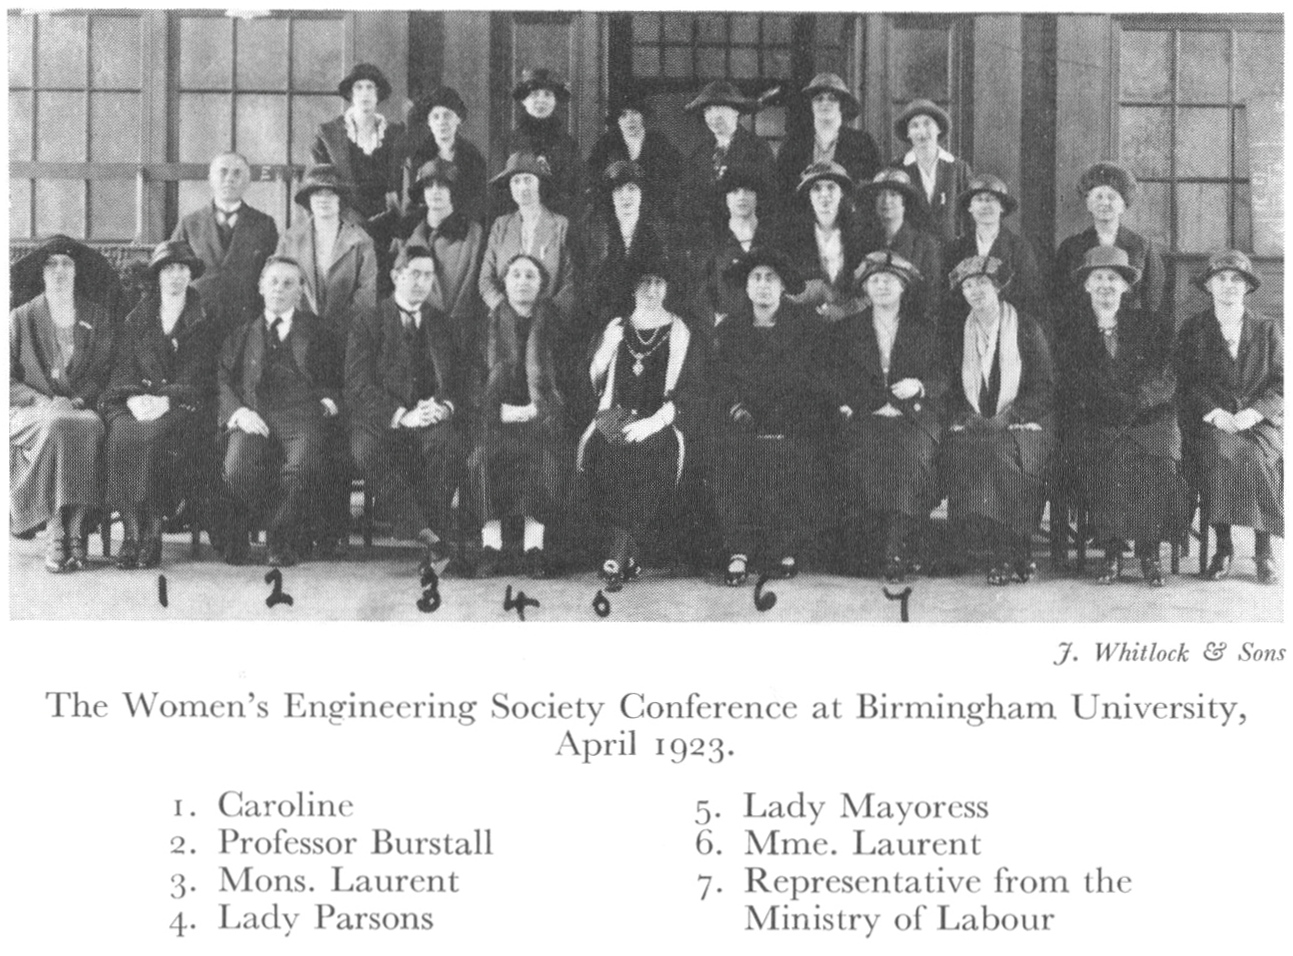 1923 conference of the <em>Women's Engineering Society</em>